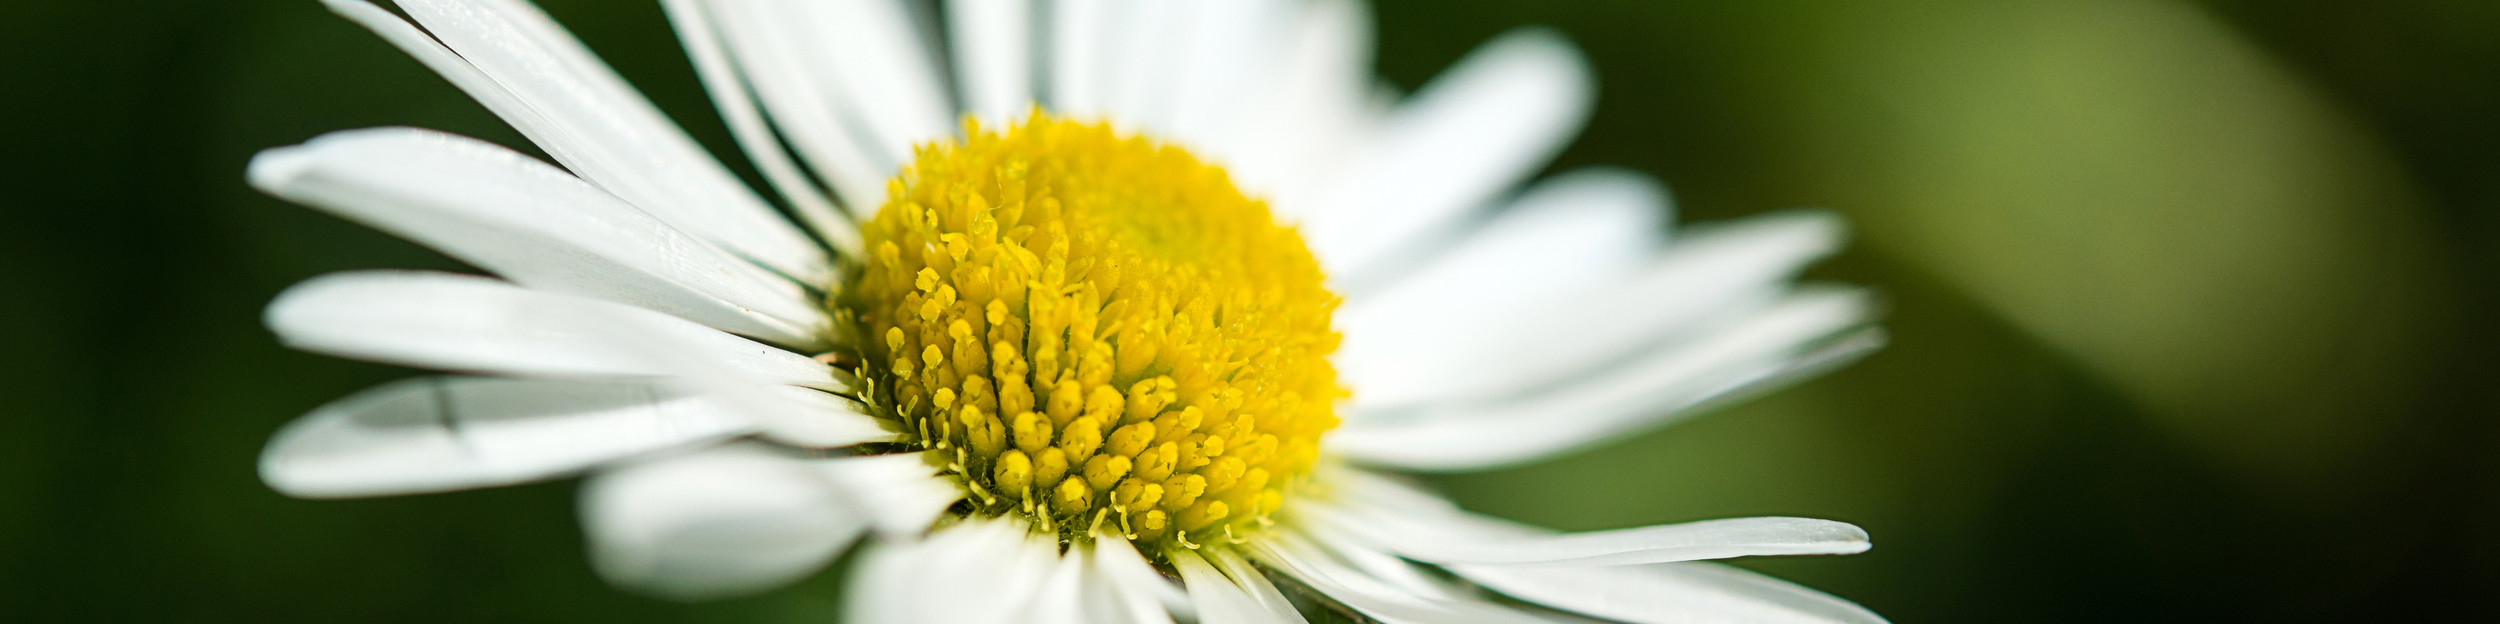 flower, yellow, white, background, daisy, camomile, floral, flora, plant, garden, petal, infusion Gaensebluemchen_dunkel.jpg